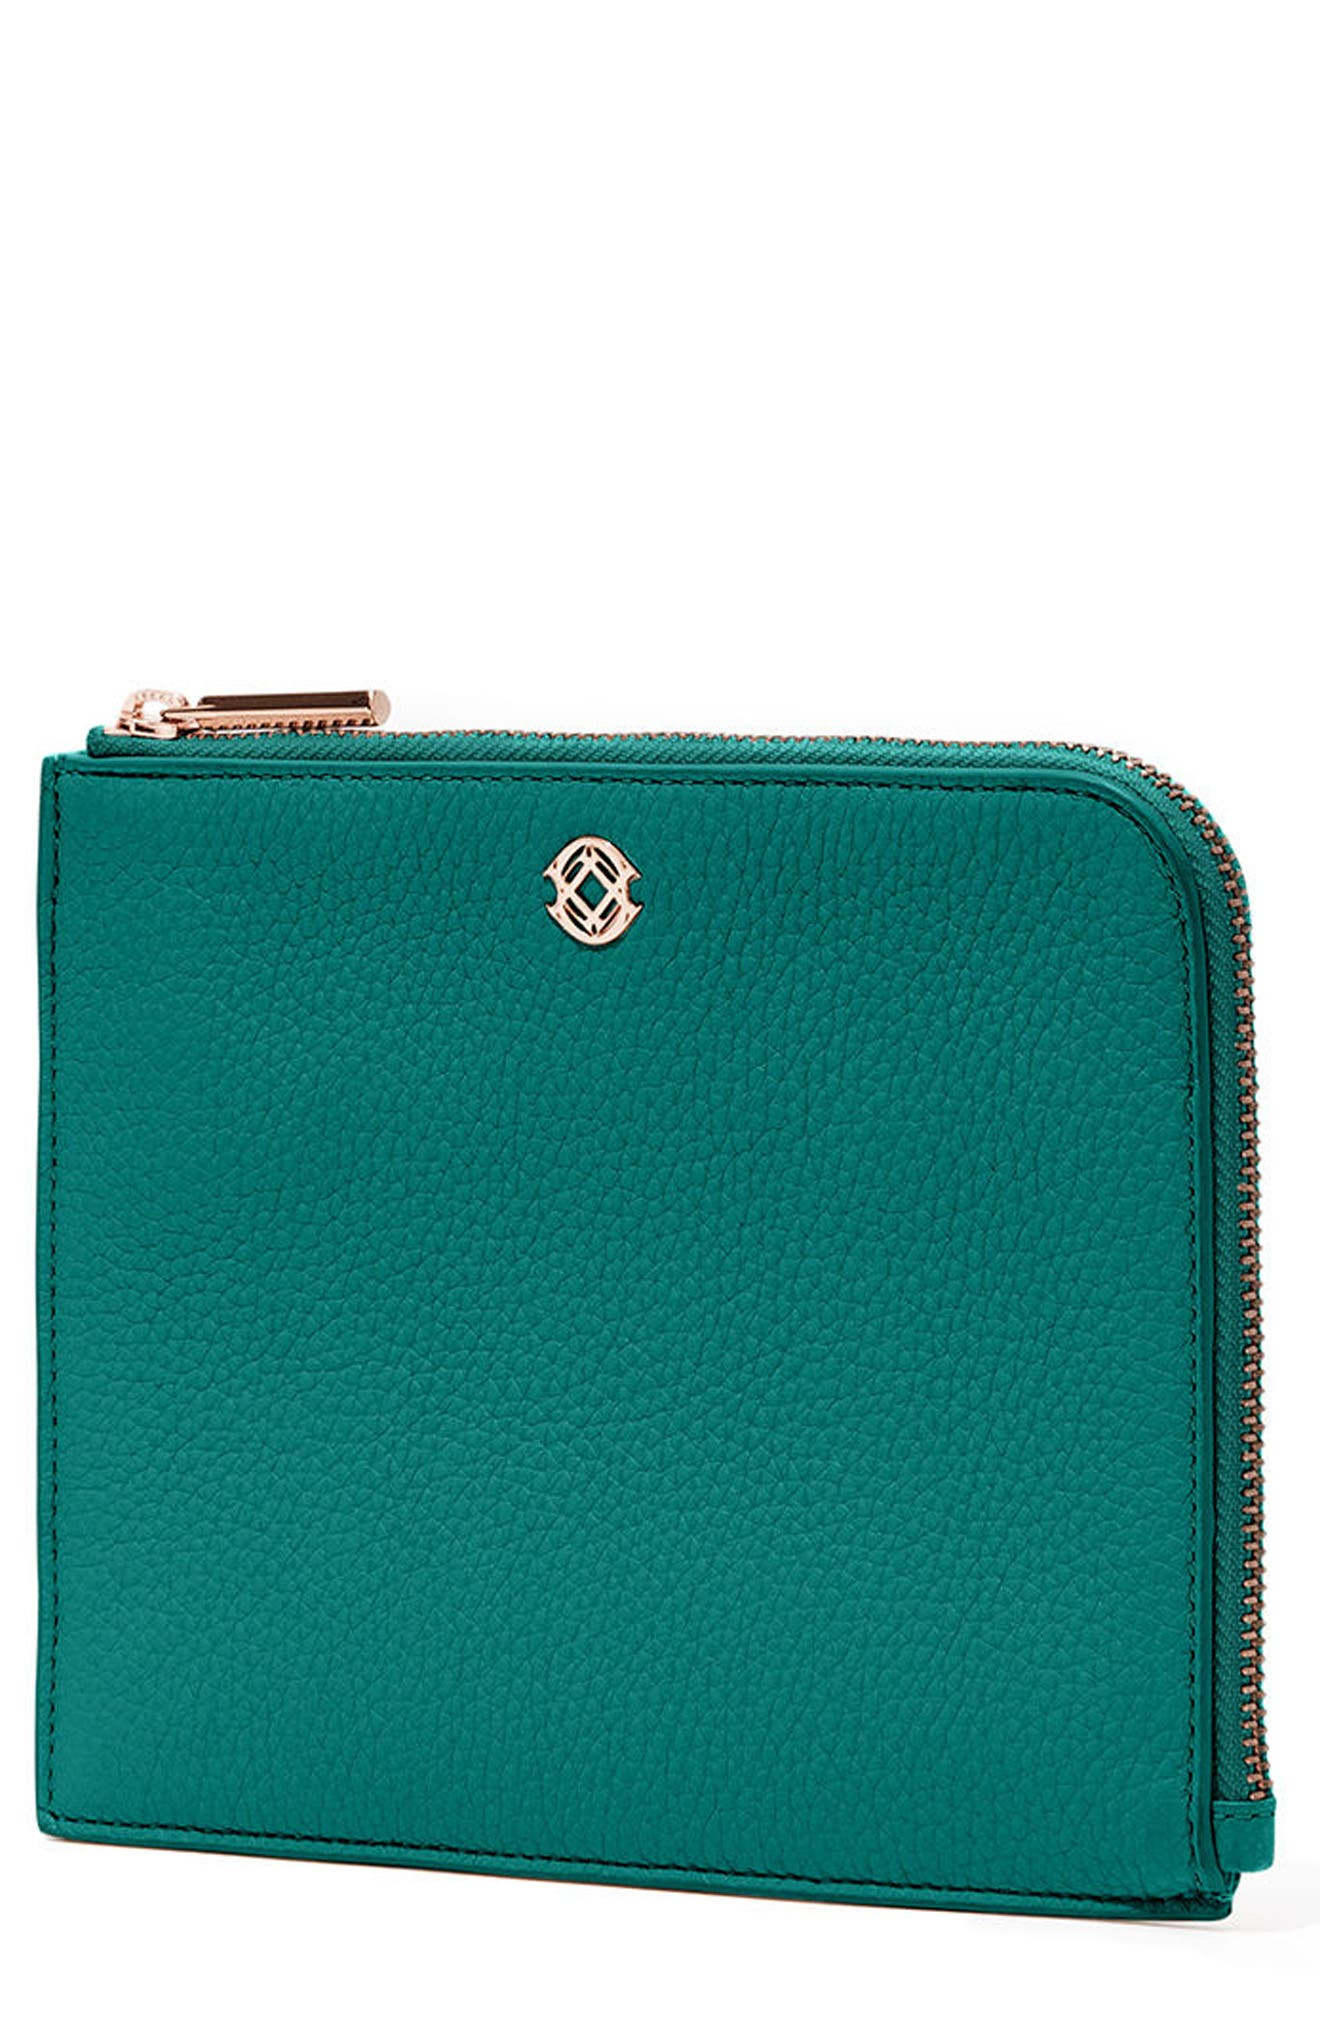 Small Elle Leather Clutch,                             Main thumbnail 4, color,